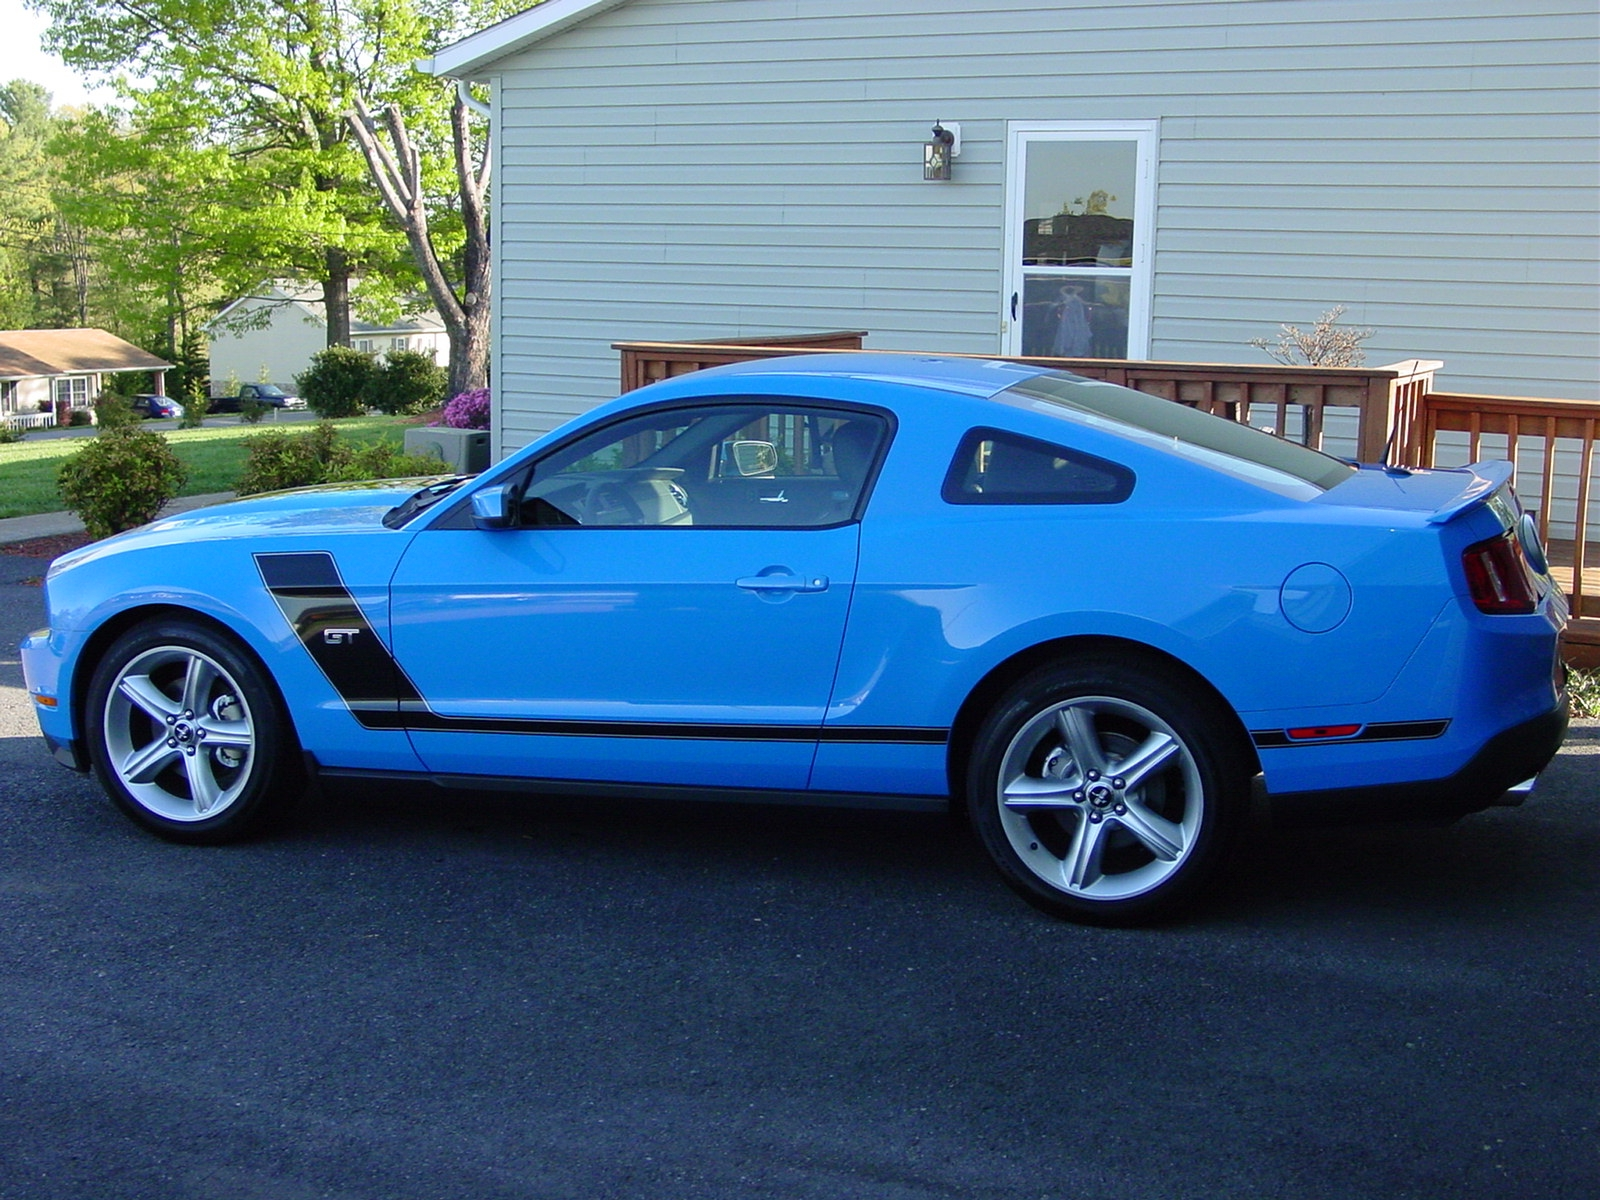 Click image for larger version  Name:2010 GT Mustang 007.JPG Views:1341 Size:1.16 MB ID:21697